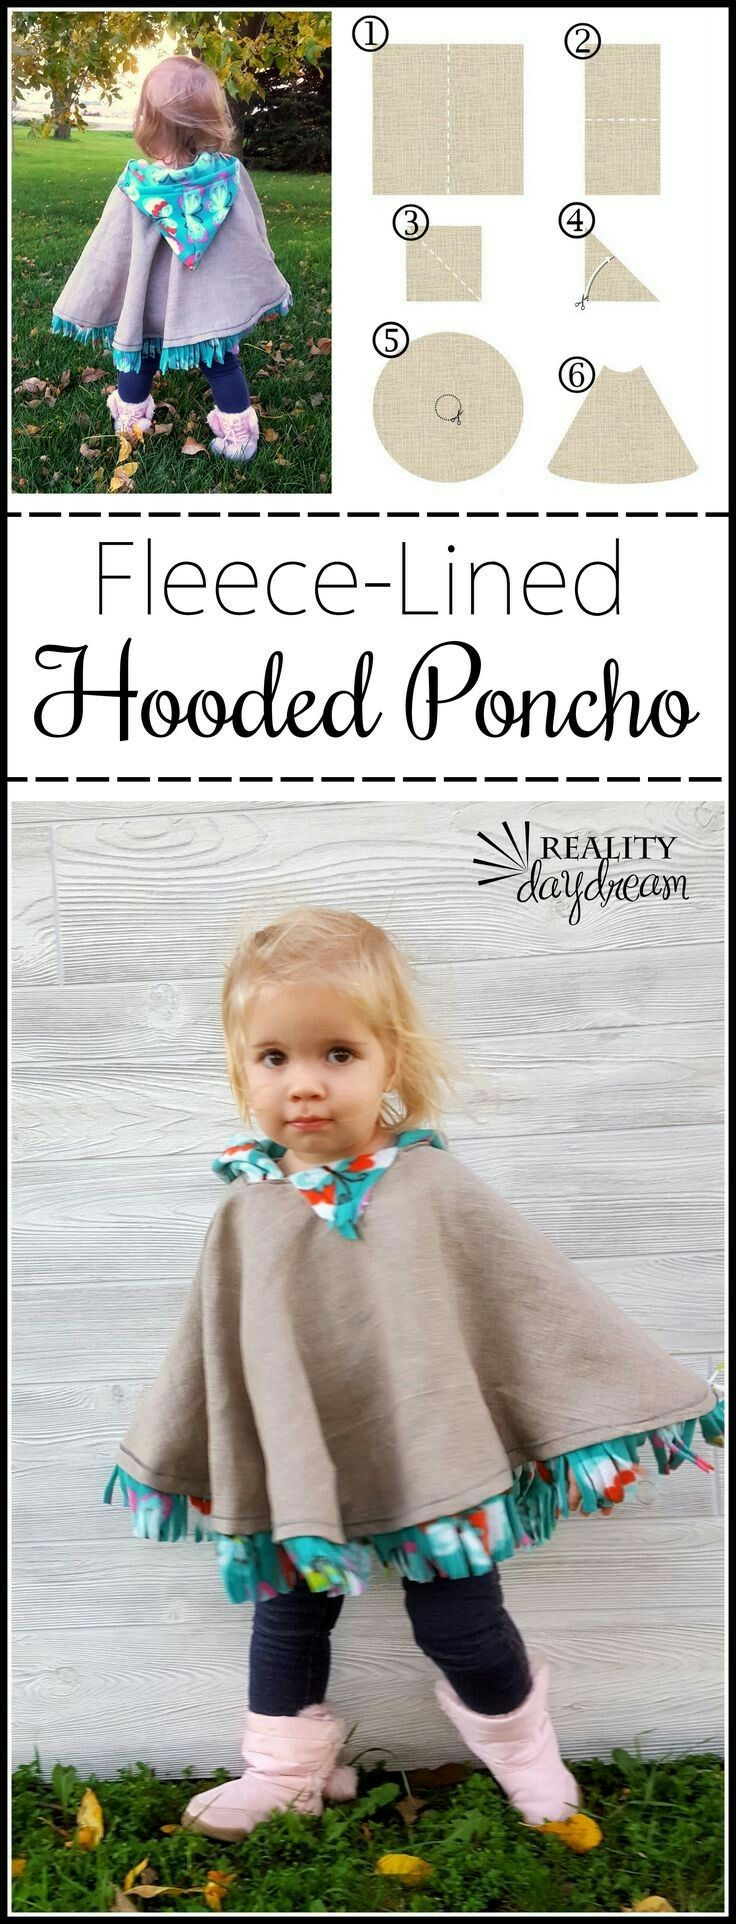 fleece-lined hooded poncho